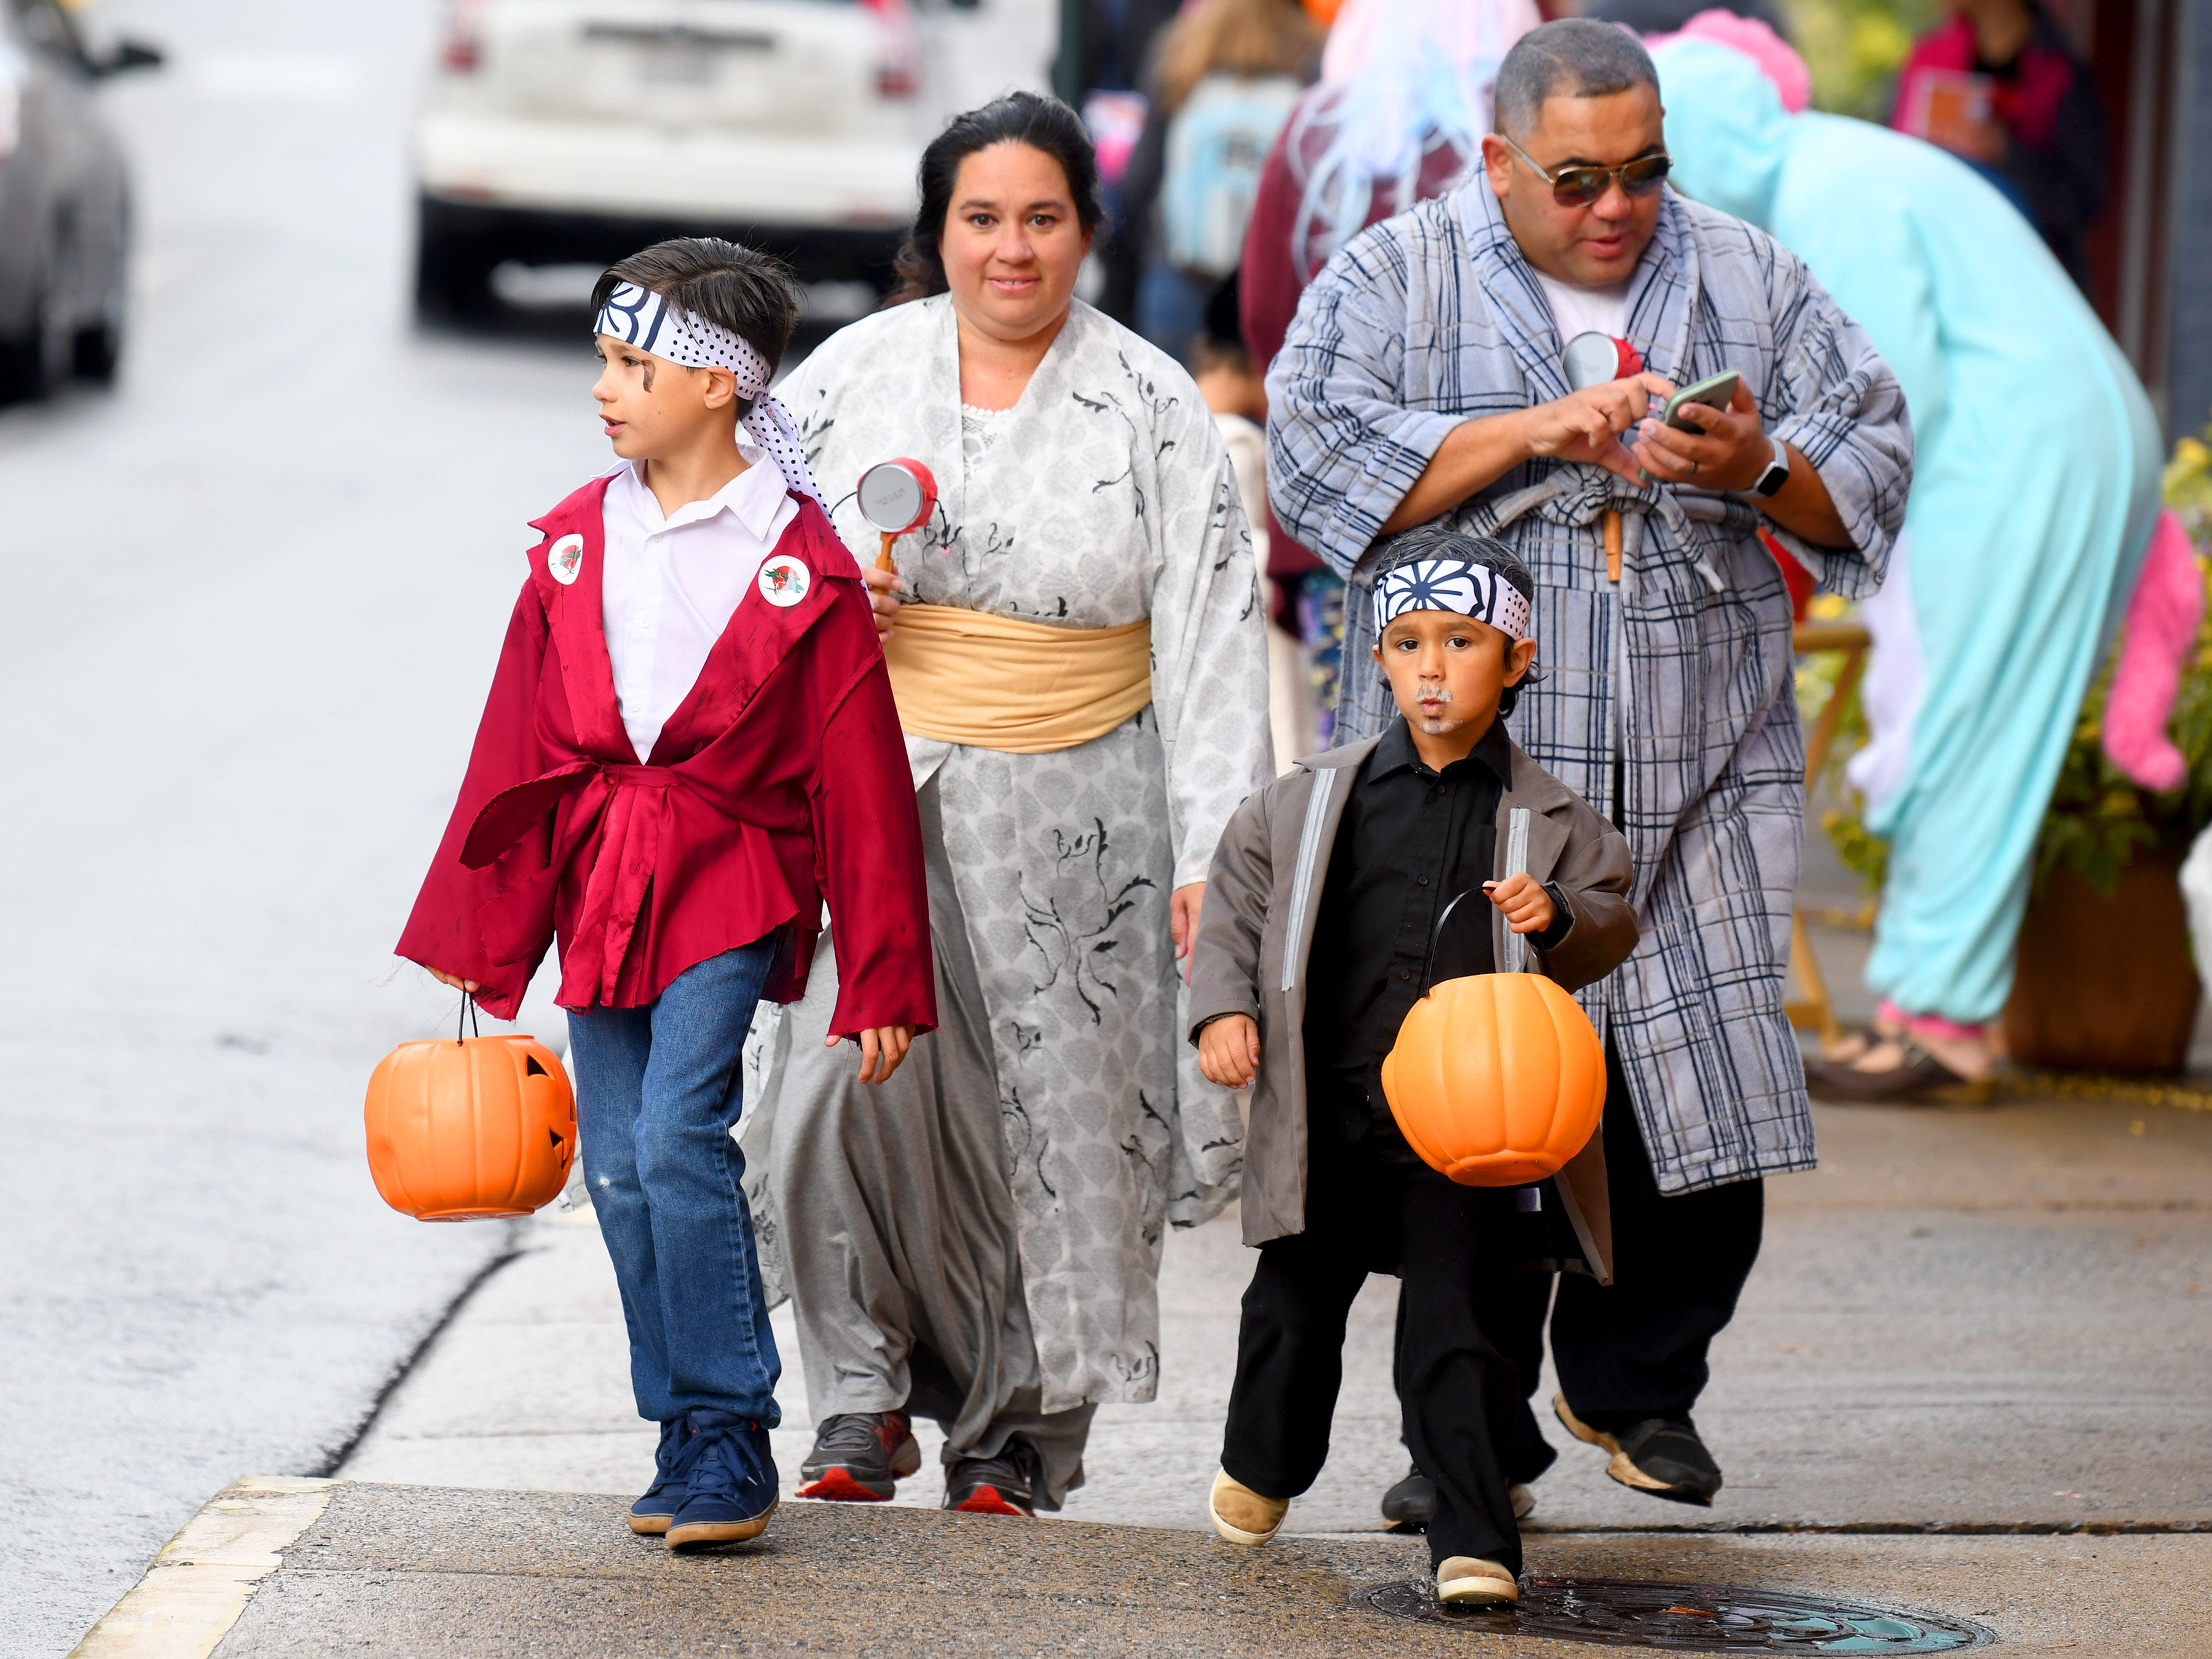 A family shares a common theme as they trick-or-treat together in downtown Staunton on Saturday, Oct. 27, 2018.